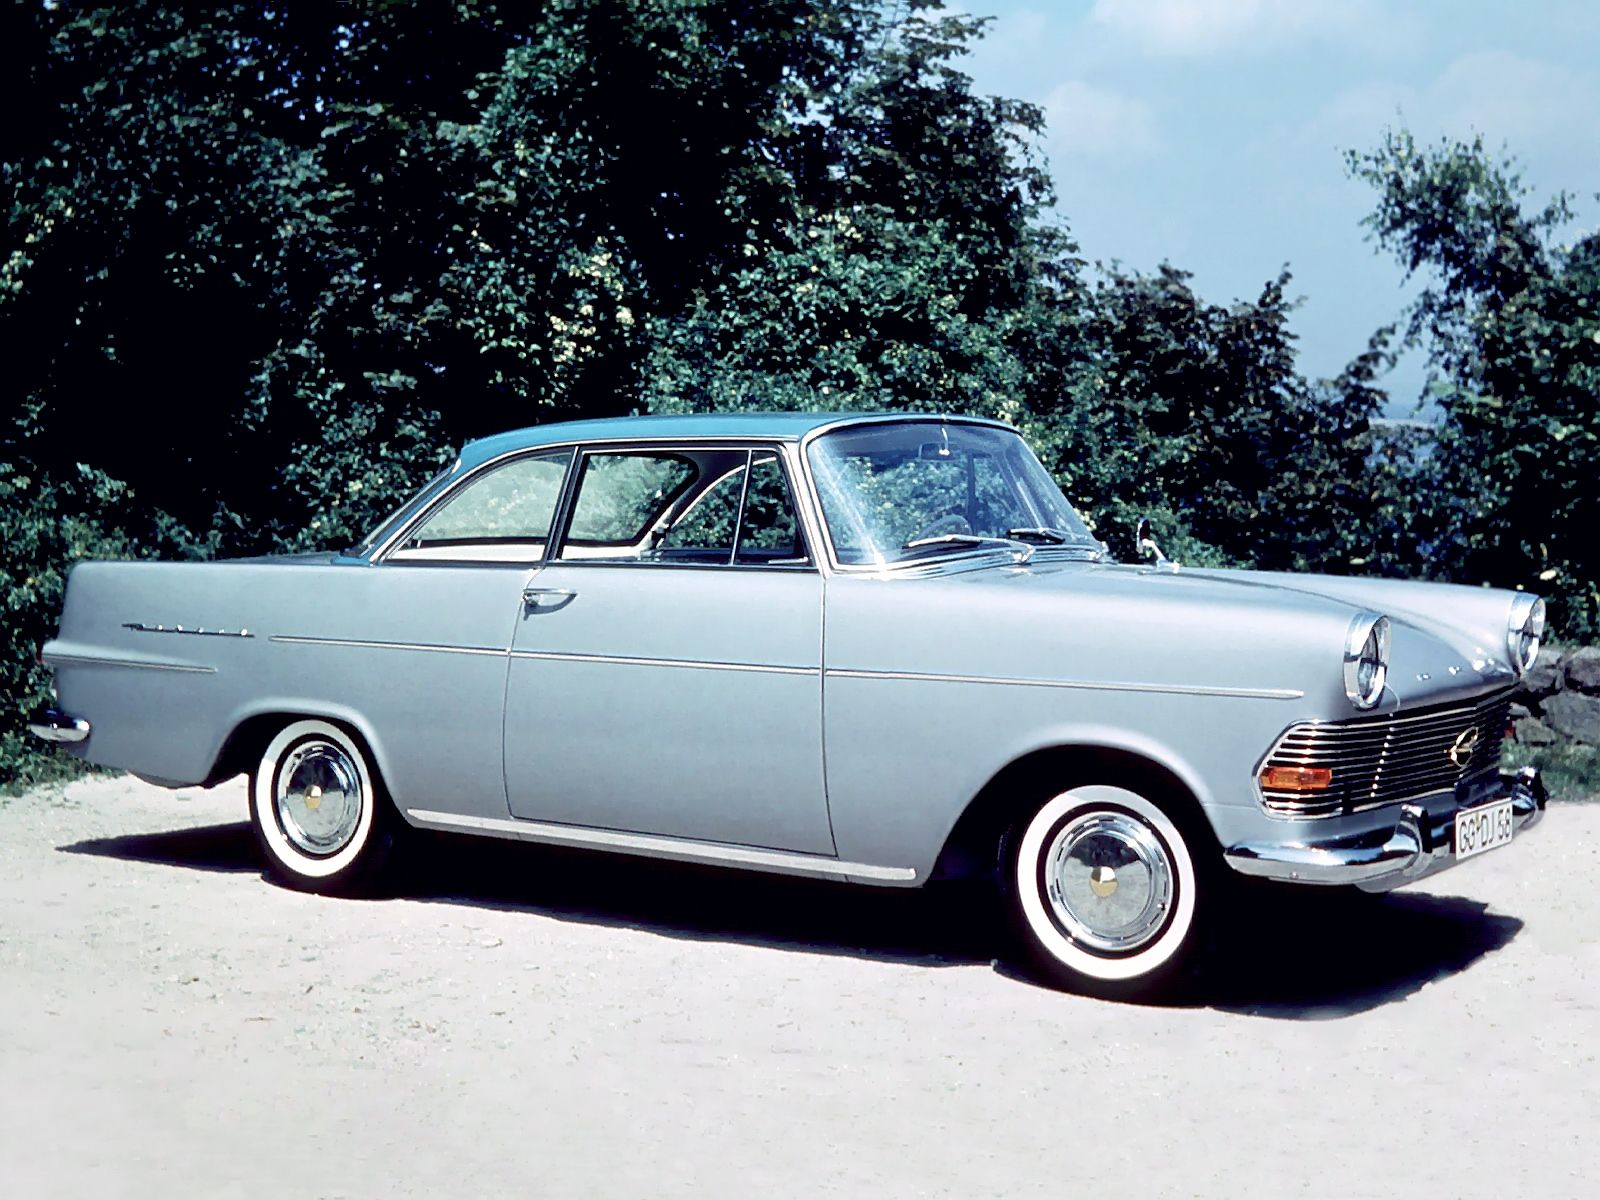 1960 63 opel rekord coupe p2 cars pinterest voiture voitures des ann es 50 and les coupes. Black Bedroom Furniture Sets. Home Design Ideas